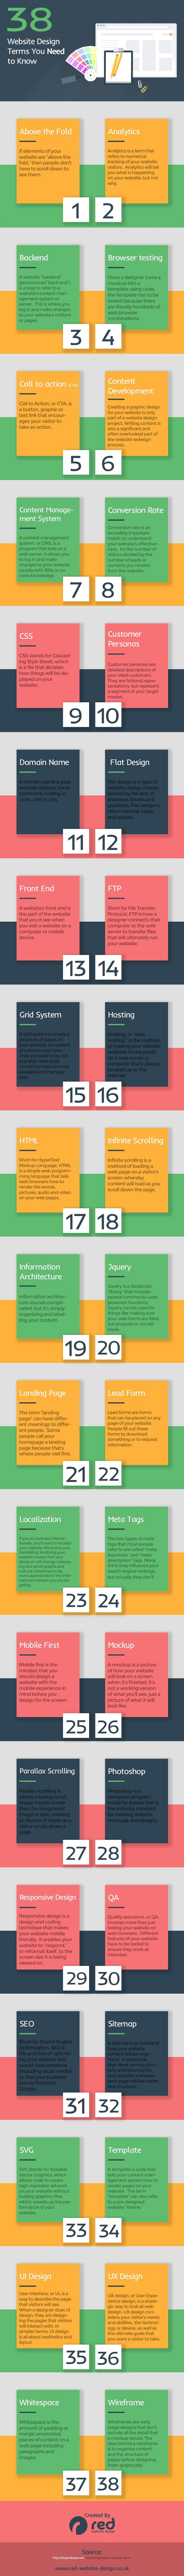 Web Design Glossary: 38 Terms & Definitions You Need to Know [Infographic]